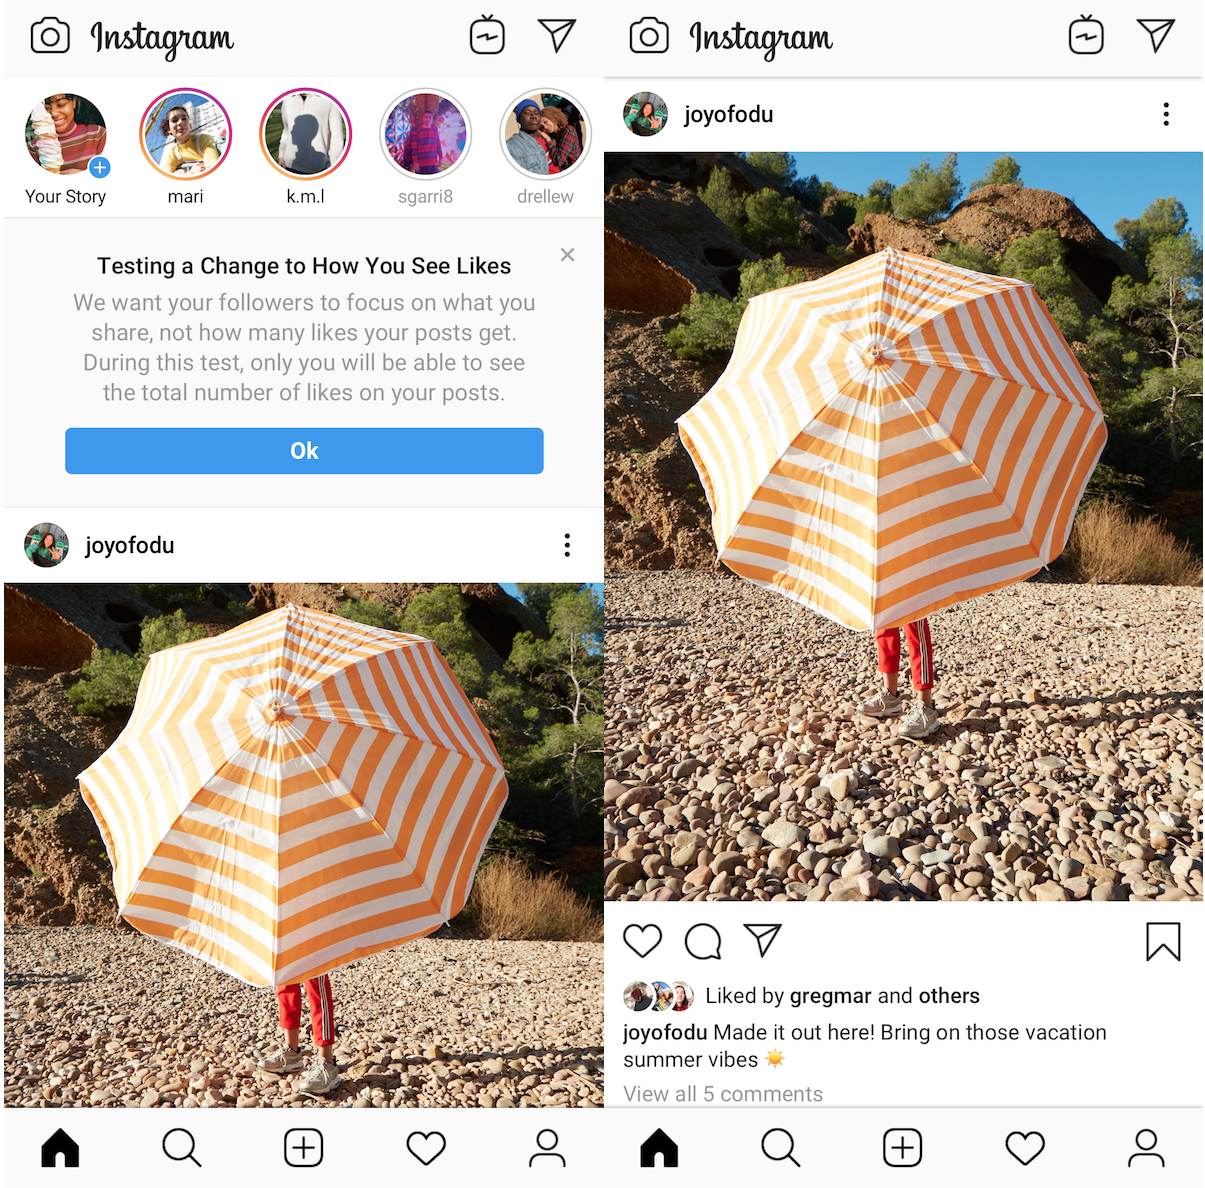 https://techcrunch.com/2019/07/17/instagram-will-now-hide-likes-in-6-more-countries/